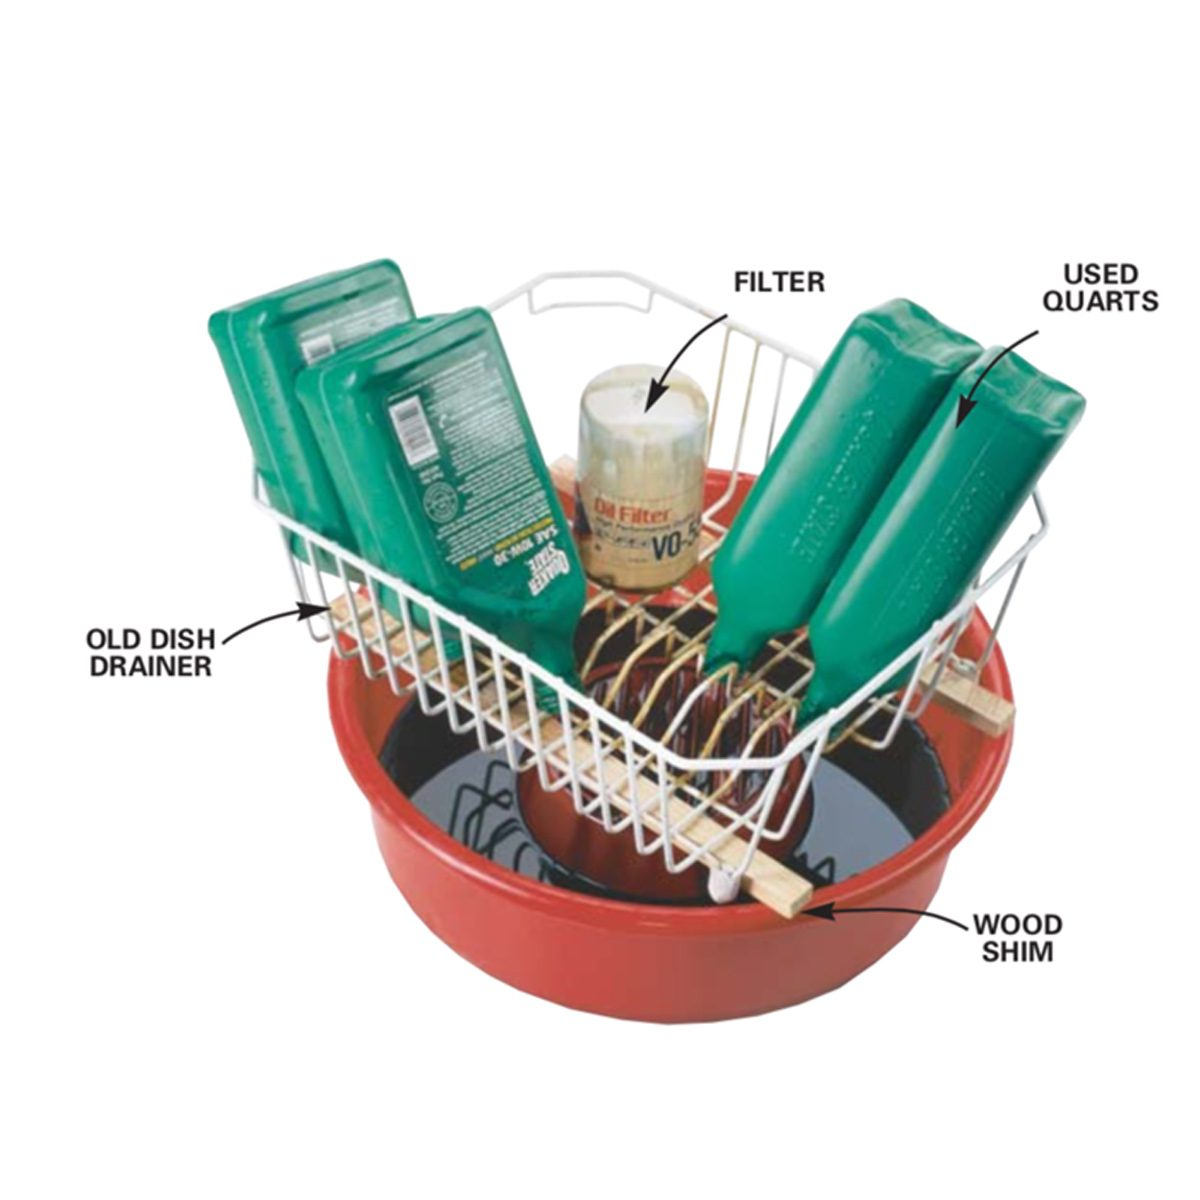 Oil drain basket